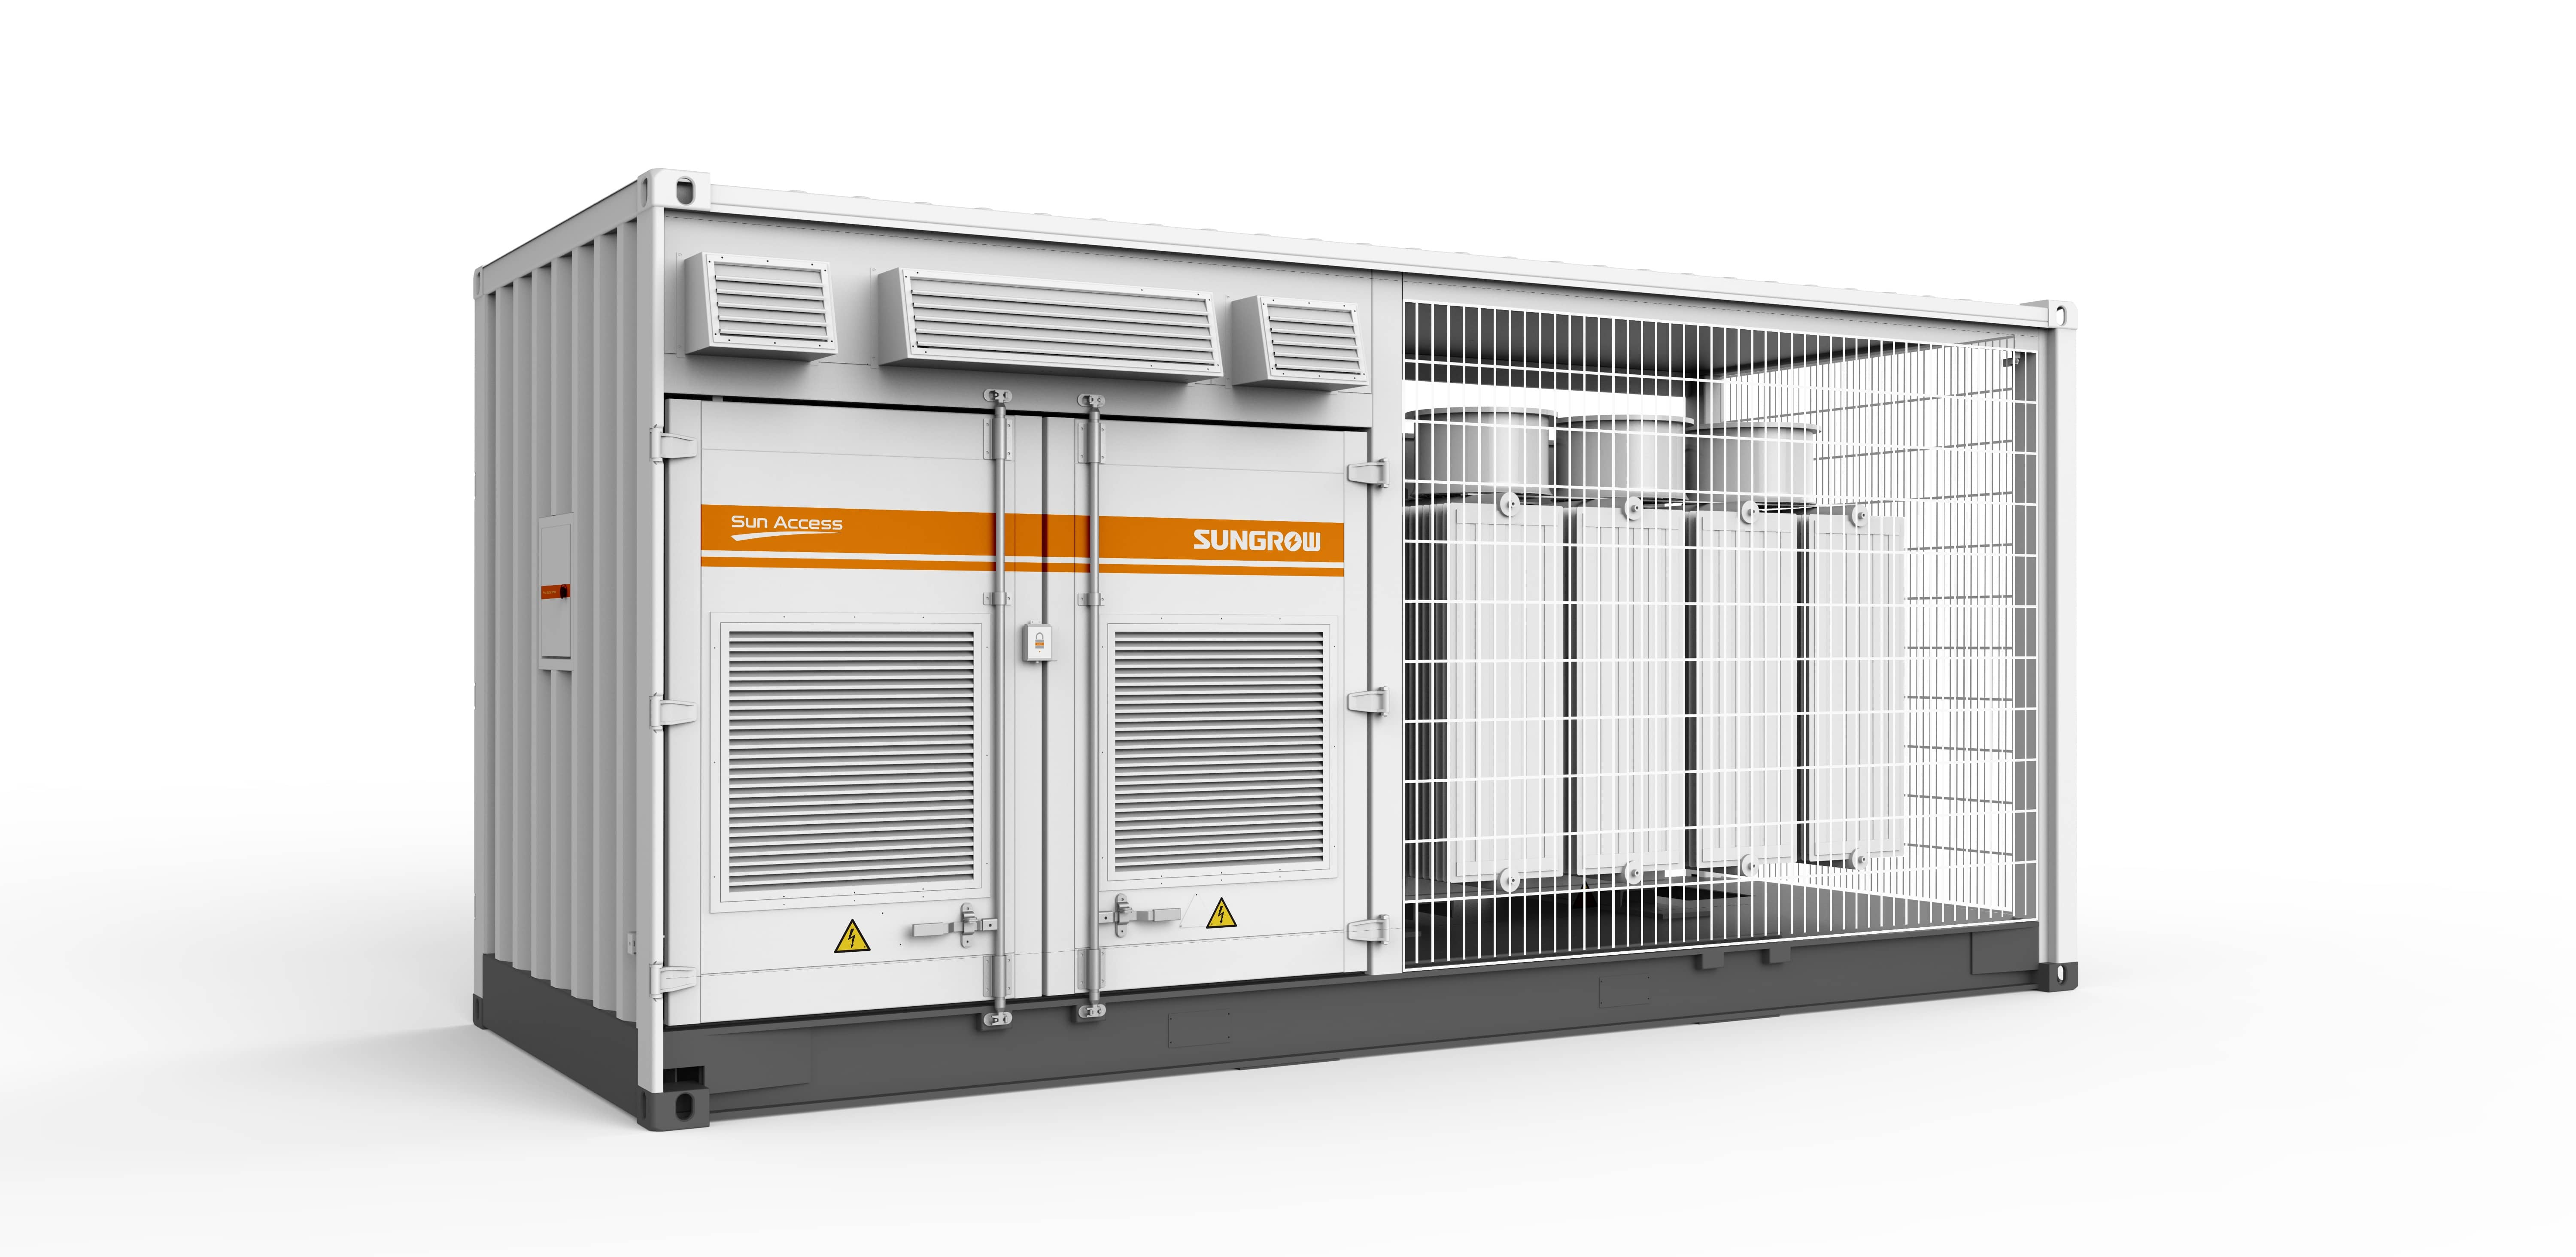 Sungrow And Abb Partner On 1 500 V Solar Solutions Solar